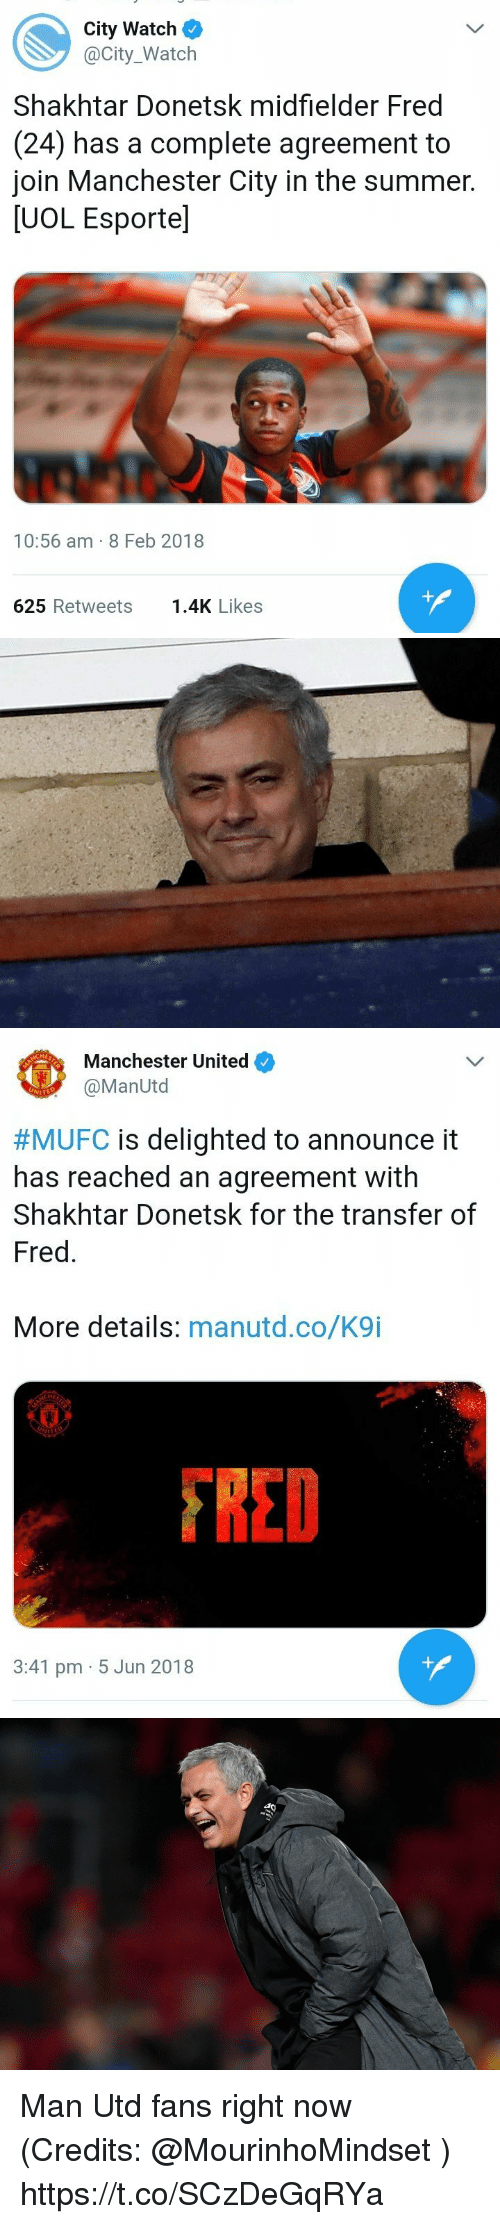 Memes, Manchester United, and Summer: City Watch  @City_Watch  Shakhtar Donetsk midfielder Fred  (24) has a complete agreement to  join Manchester City in the summer.  [UOL Esporte]  10:56 am- 8 Feb 2018  625 Retweets1.4K Likes   Manchester United  @ManUtd  NIT  #MUFC is delighted to announce it  has reached an agreement with  Shakhtar Donetsk for the transfer of  Fred.  More details: manutd.co/K9i  FRED  3:41 pm 5 Jun 2018 Man Utd fans right now (Credits: @MourinhoMindset ) https://t.co/SCzDeGqRYa